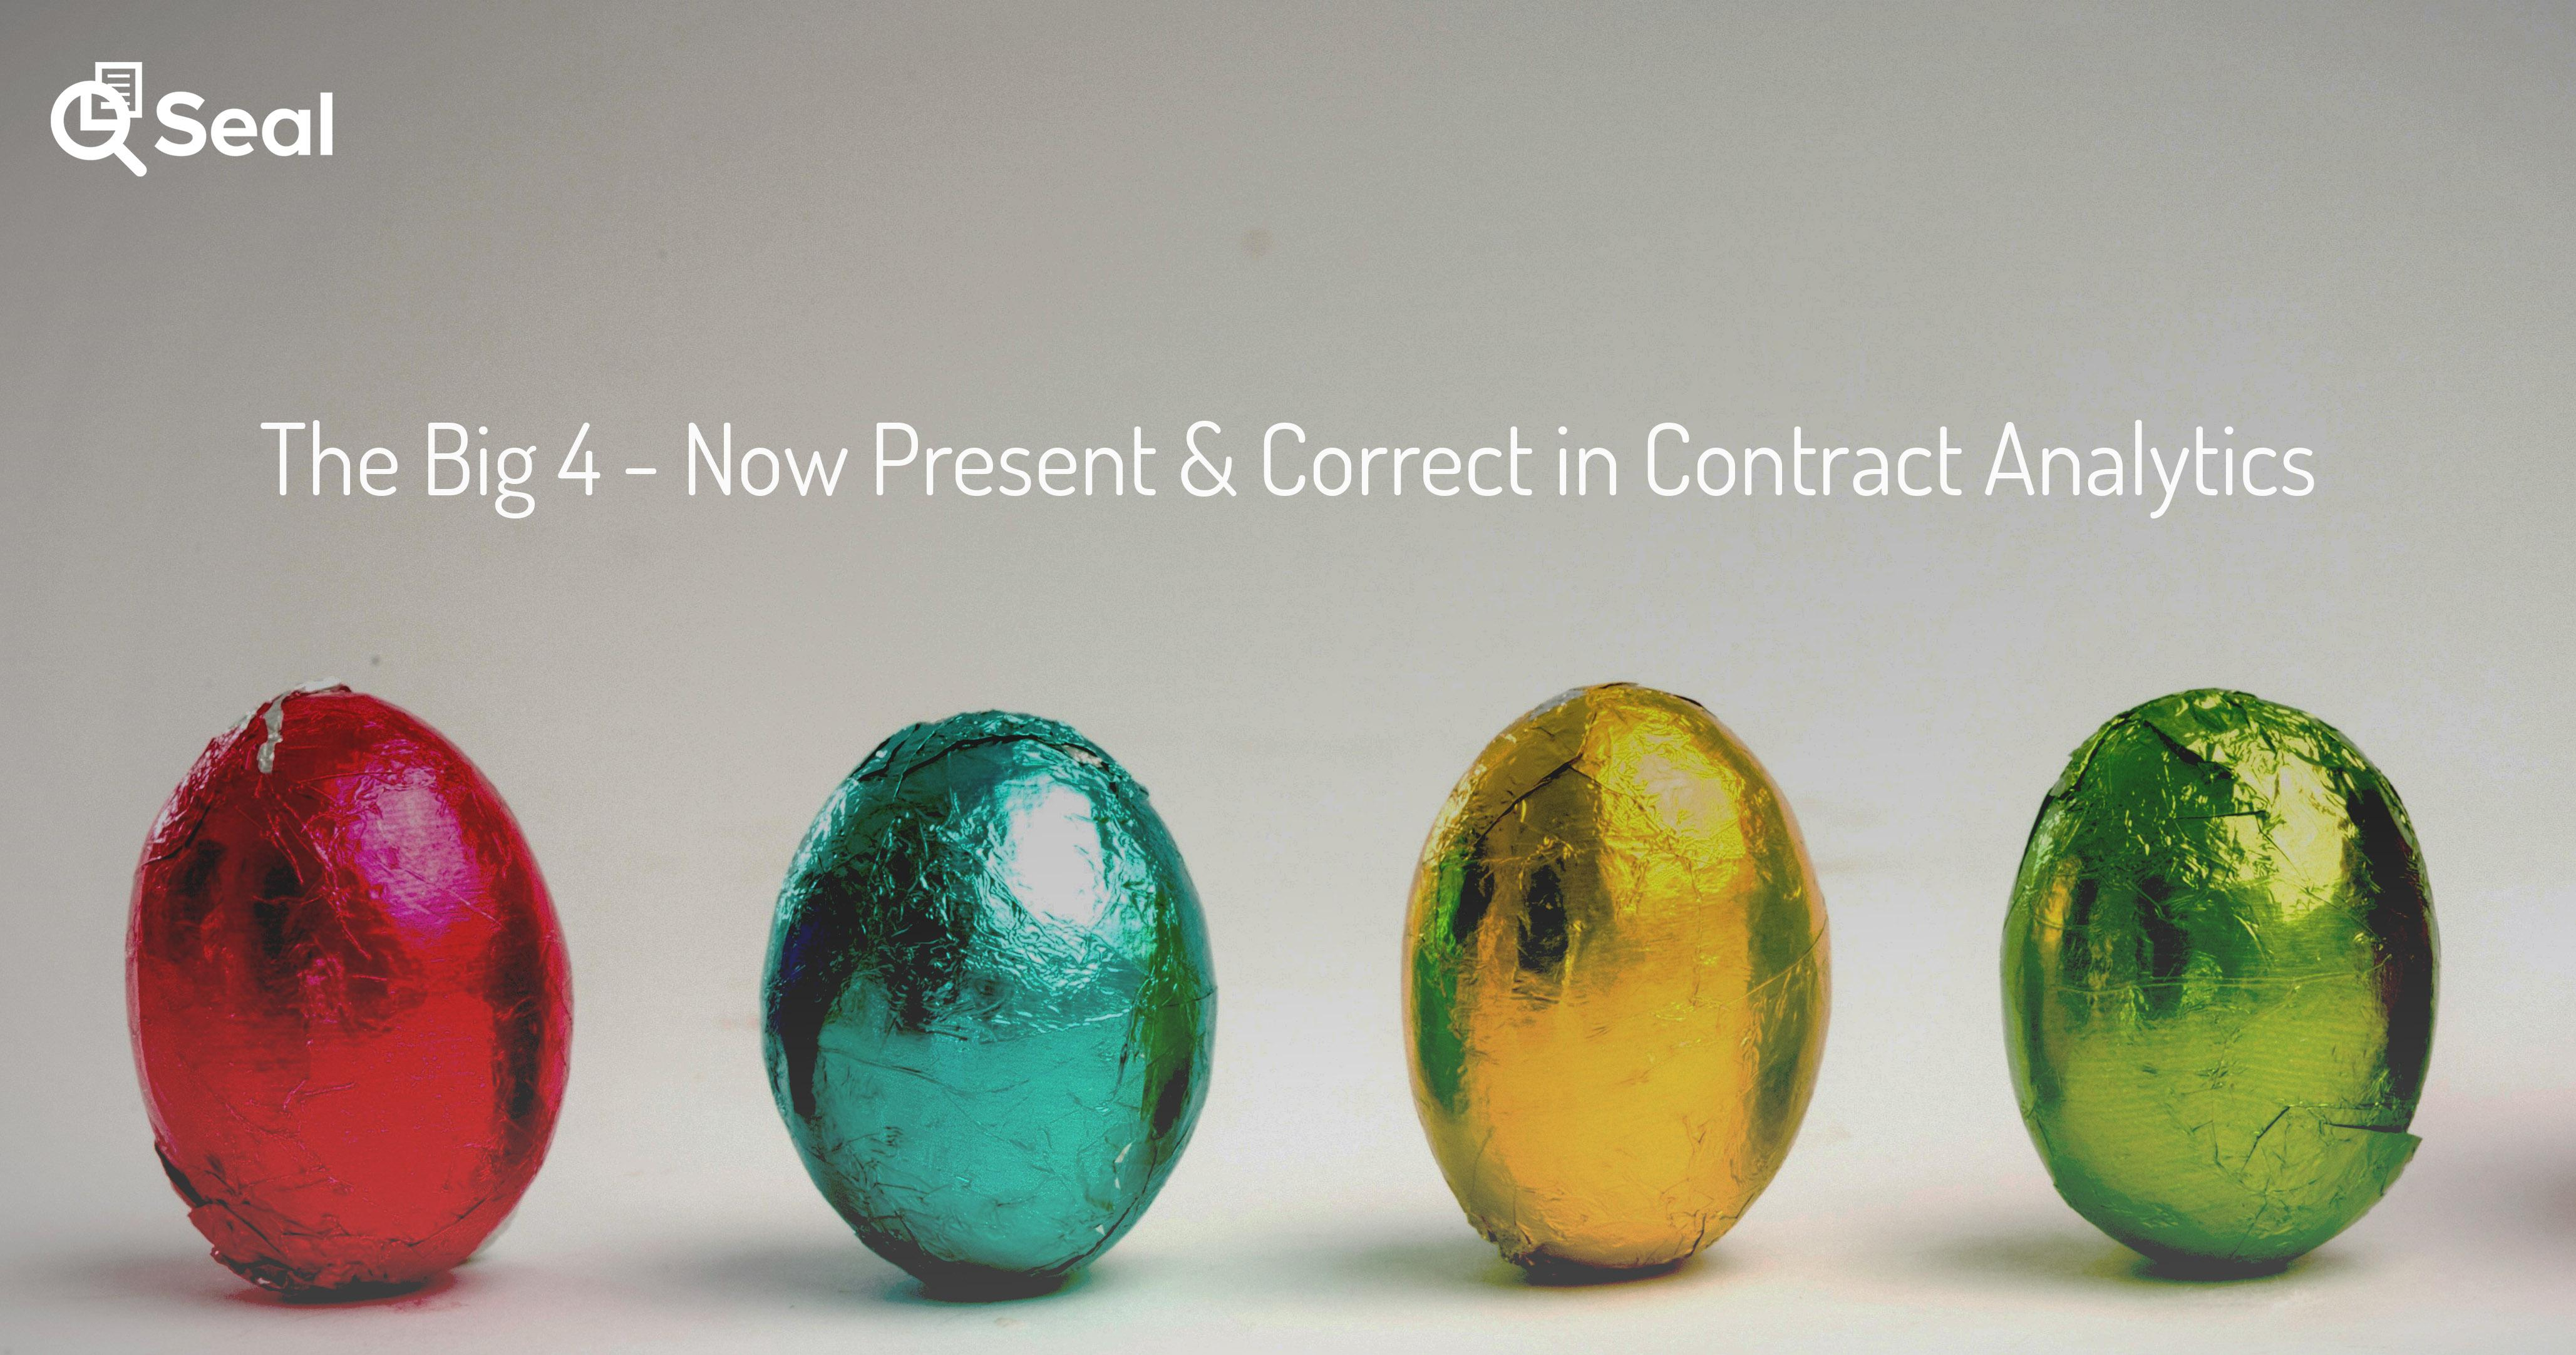 The Big 4 – Now Present & Correct in Contract Analytics